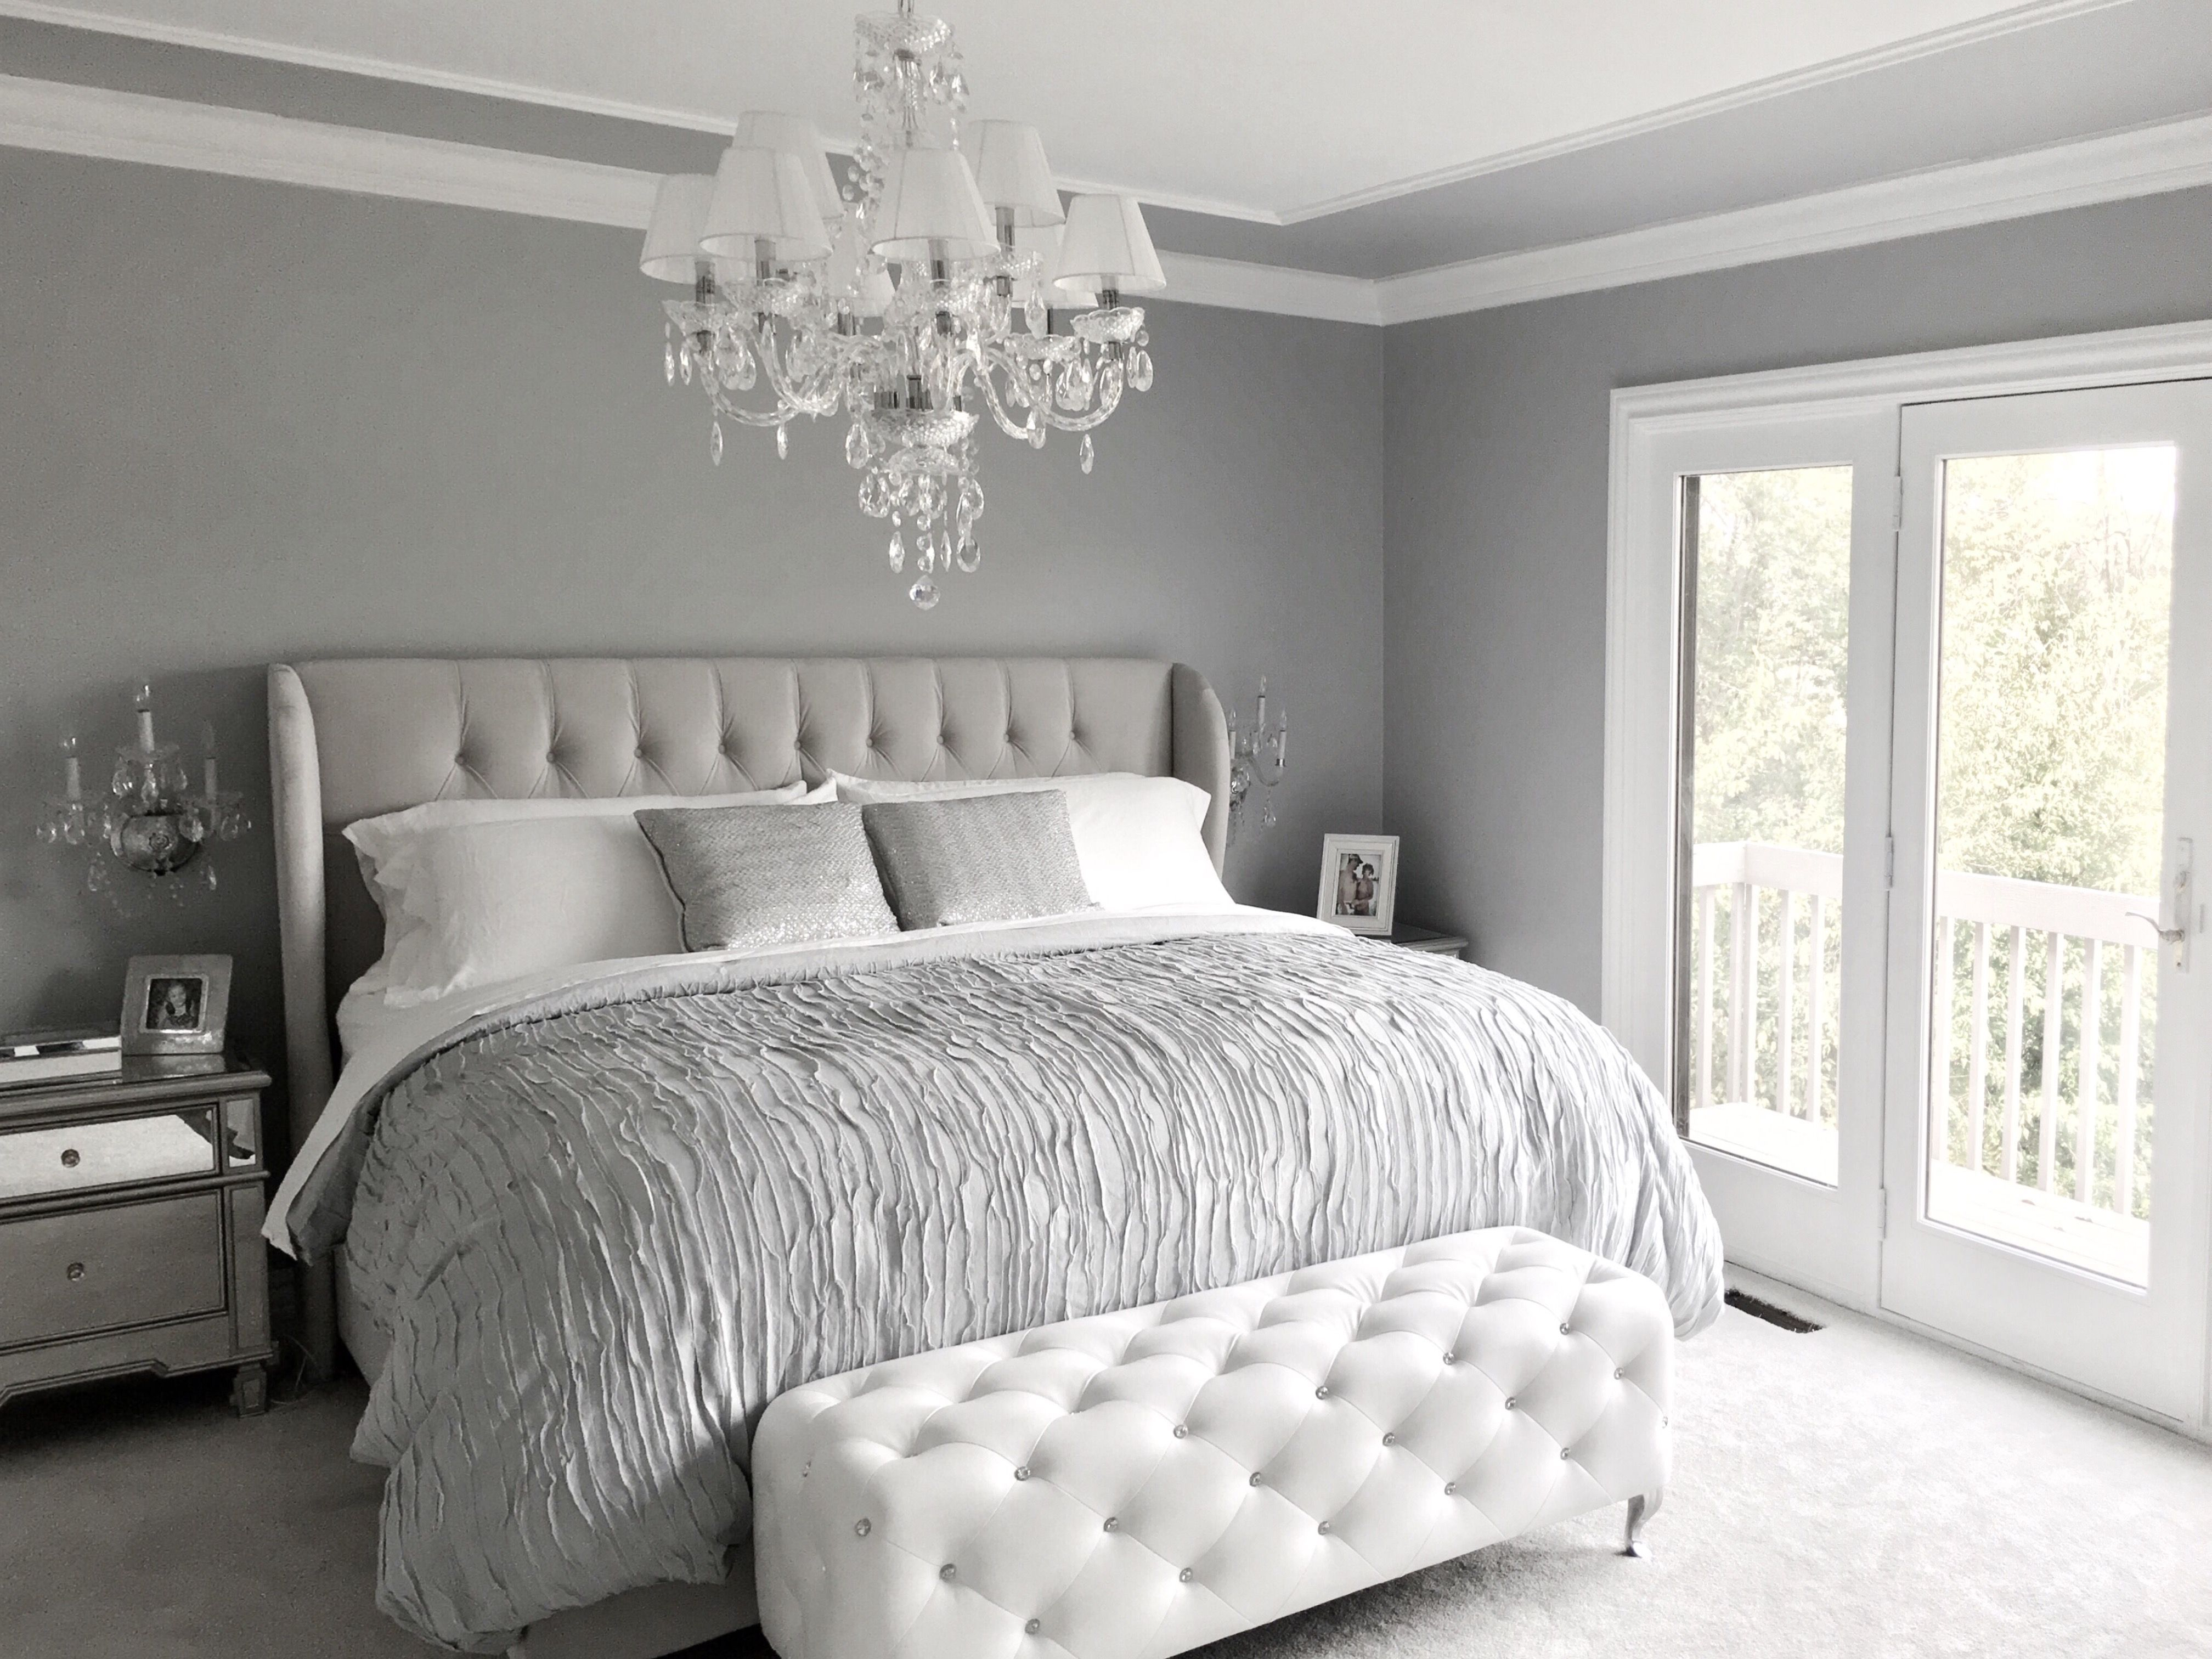 5 Furniture Pieces That Never Go Out of Style  Grey bedroom